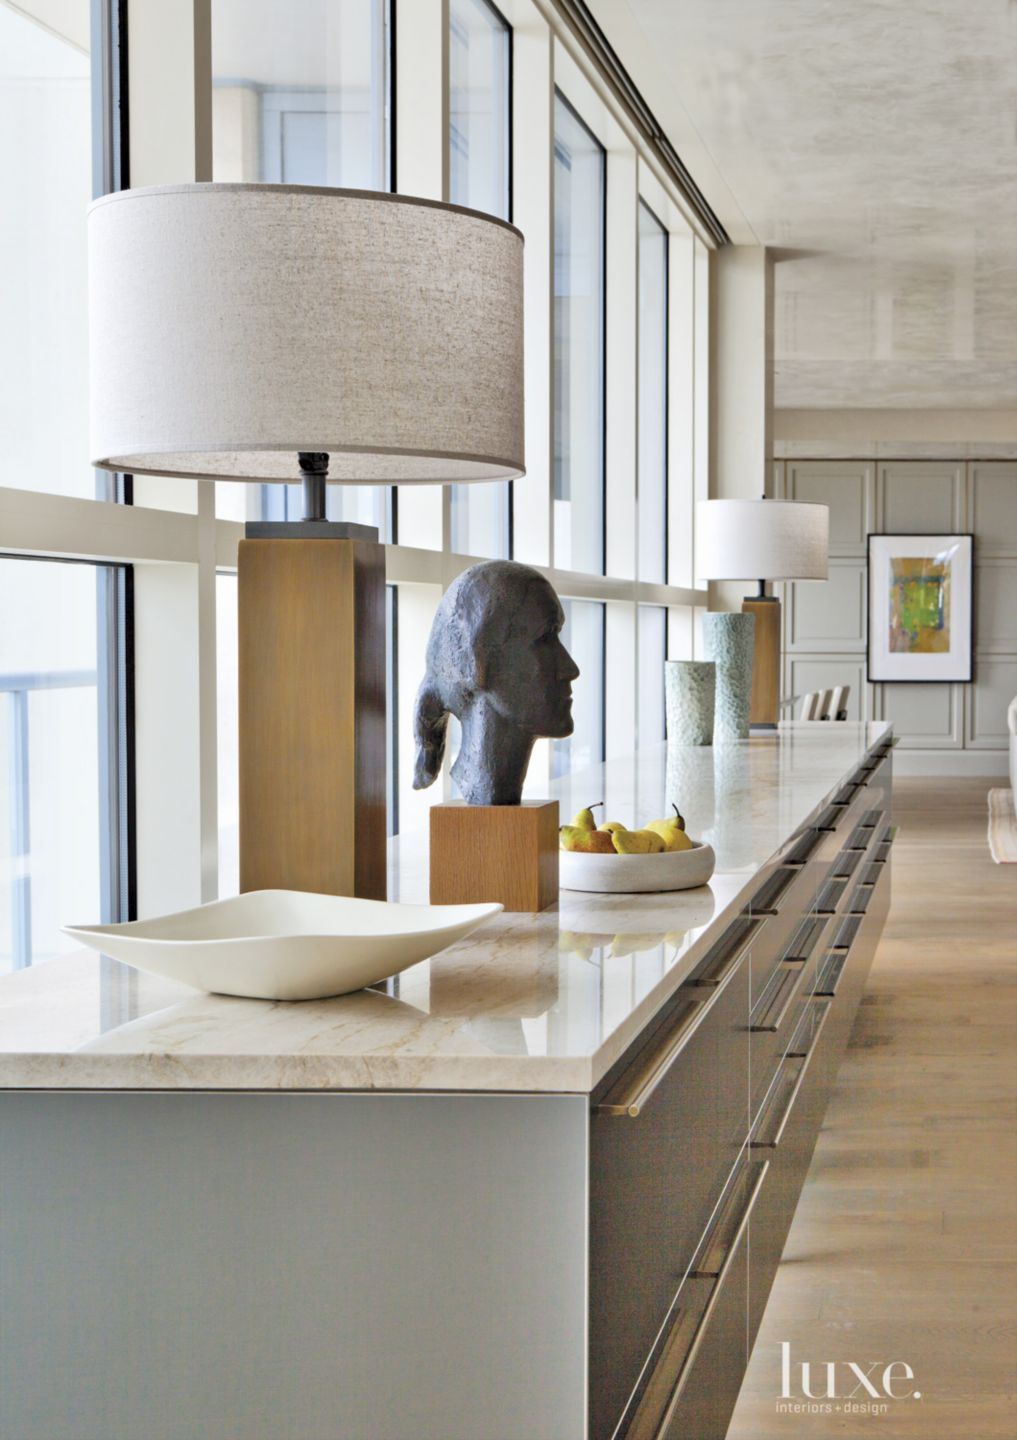 Contemporary Neutral Kitchen with Head Statue